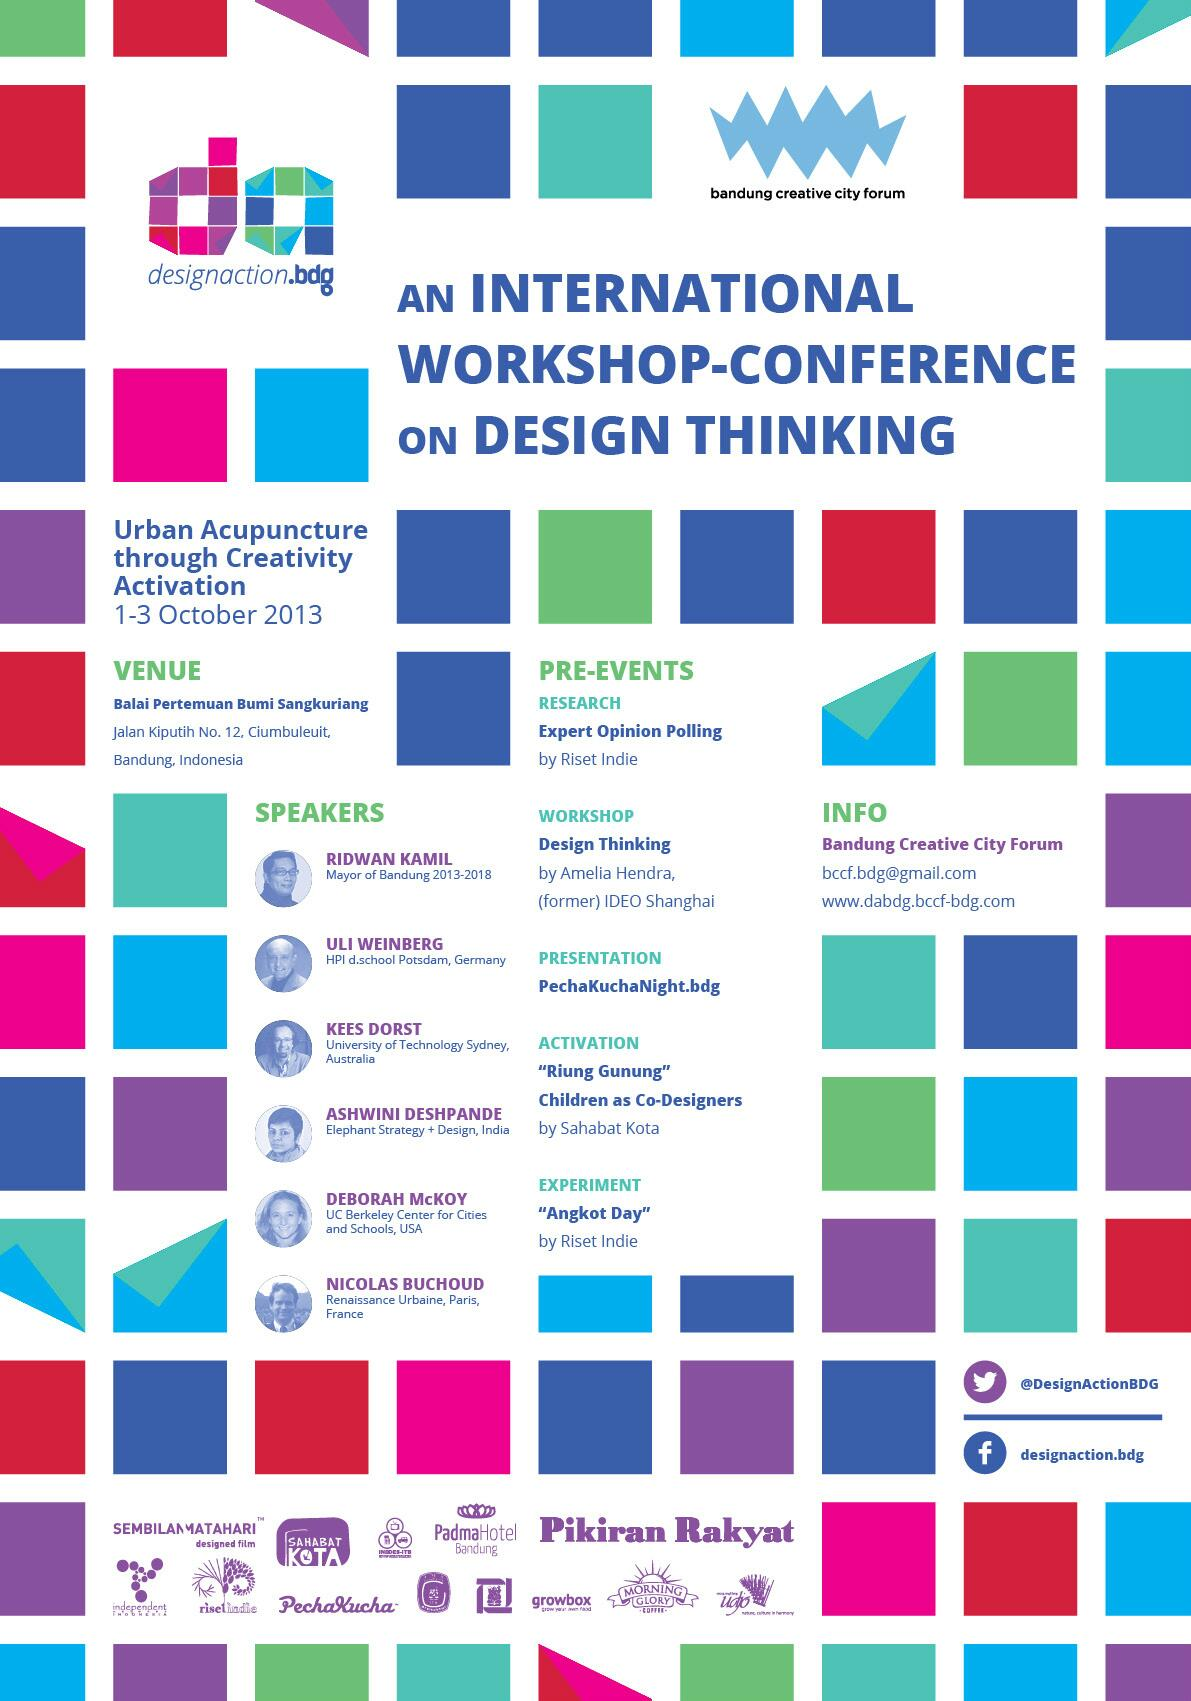 DesignAction.bdg International workshop-conference on design thinking